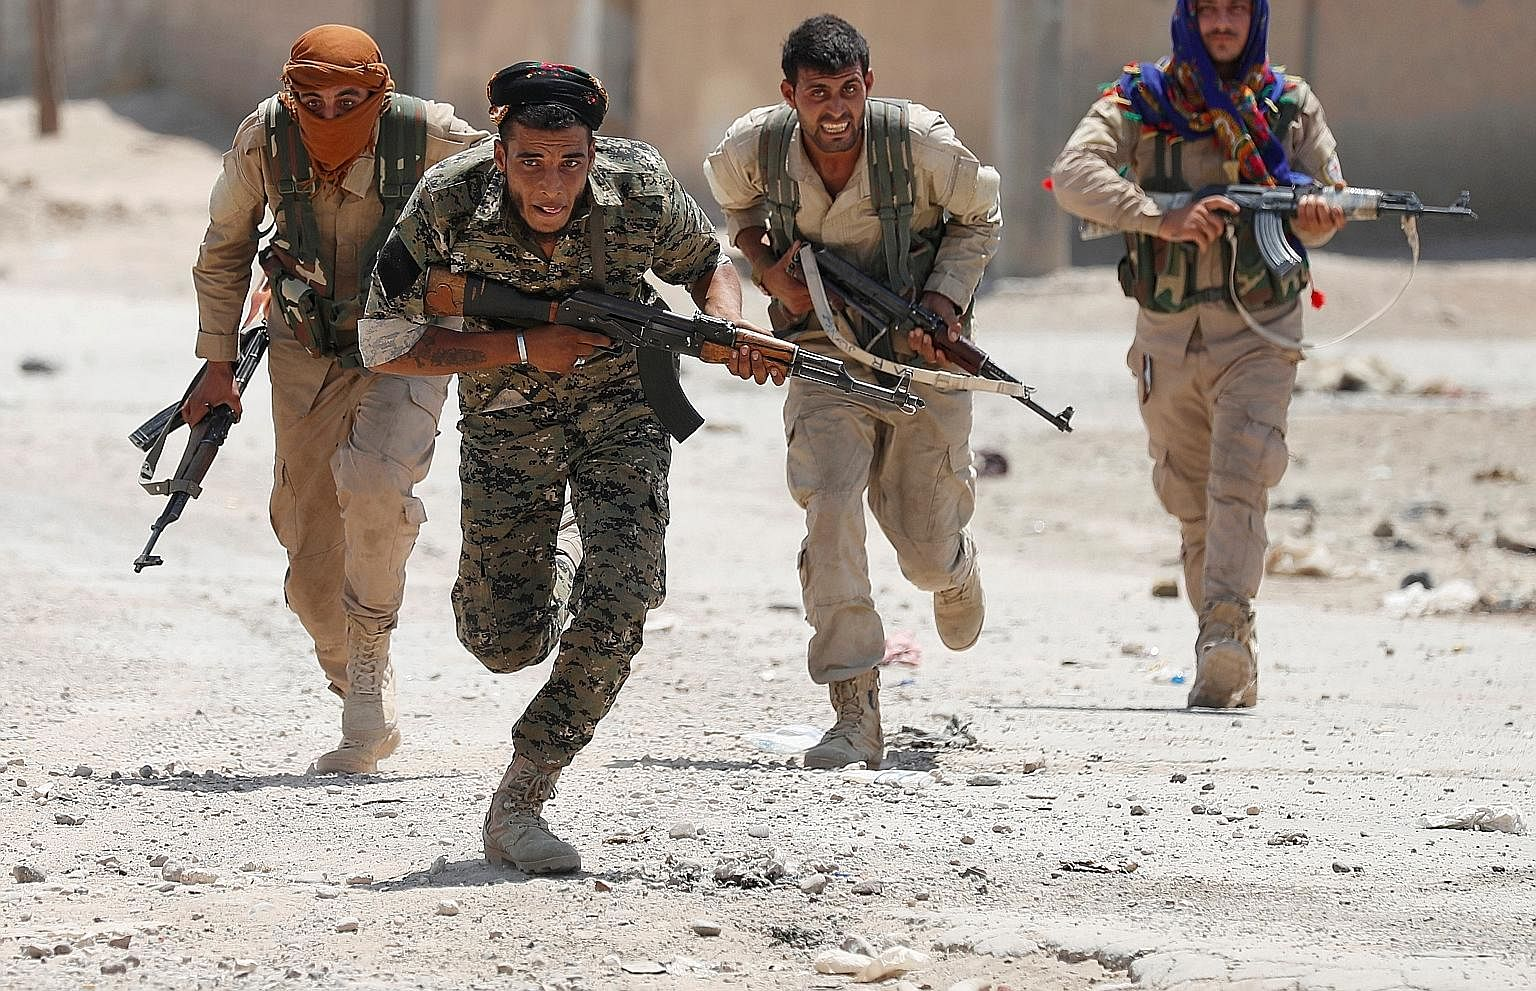 The liberation of Raqqa, Syria, is largely conducted by the Syrian Democratic Forces, a coalition of various pro-Western militia in which ethnic Kurds drawn from the People's Protection Units predominate.